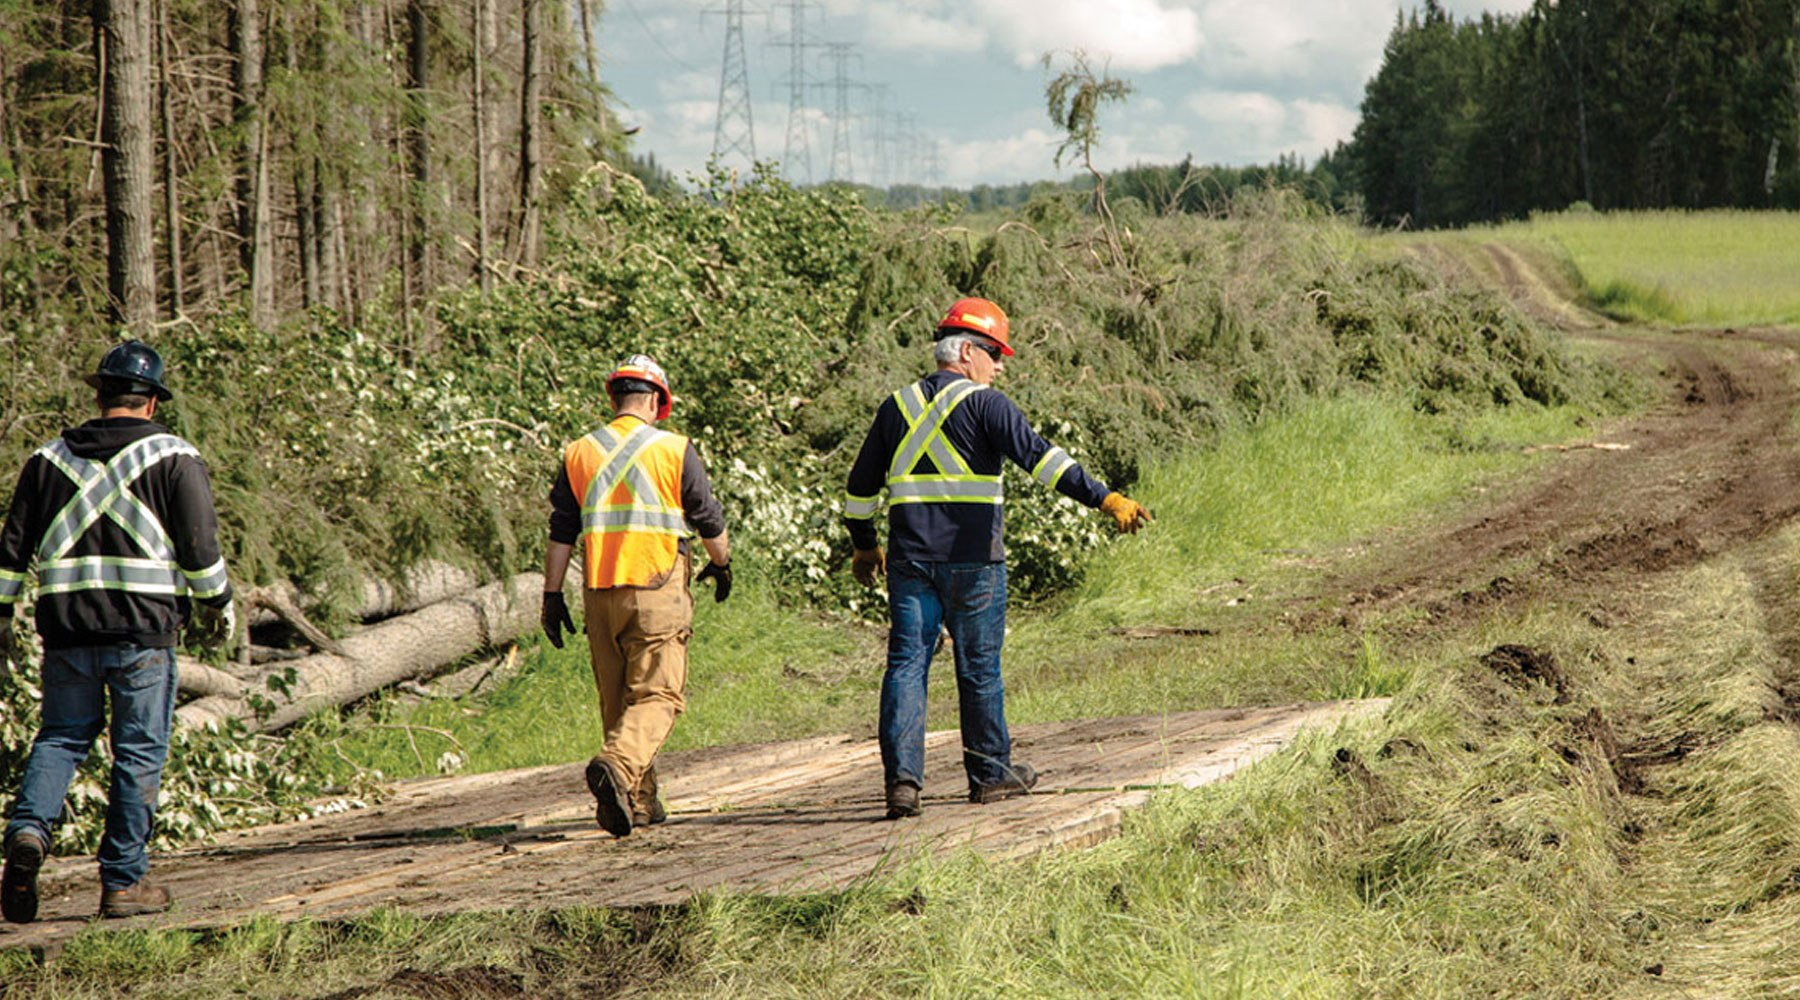 Three workers wearing PPE walking through a cleared section of landscape